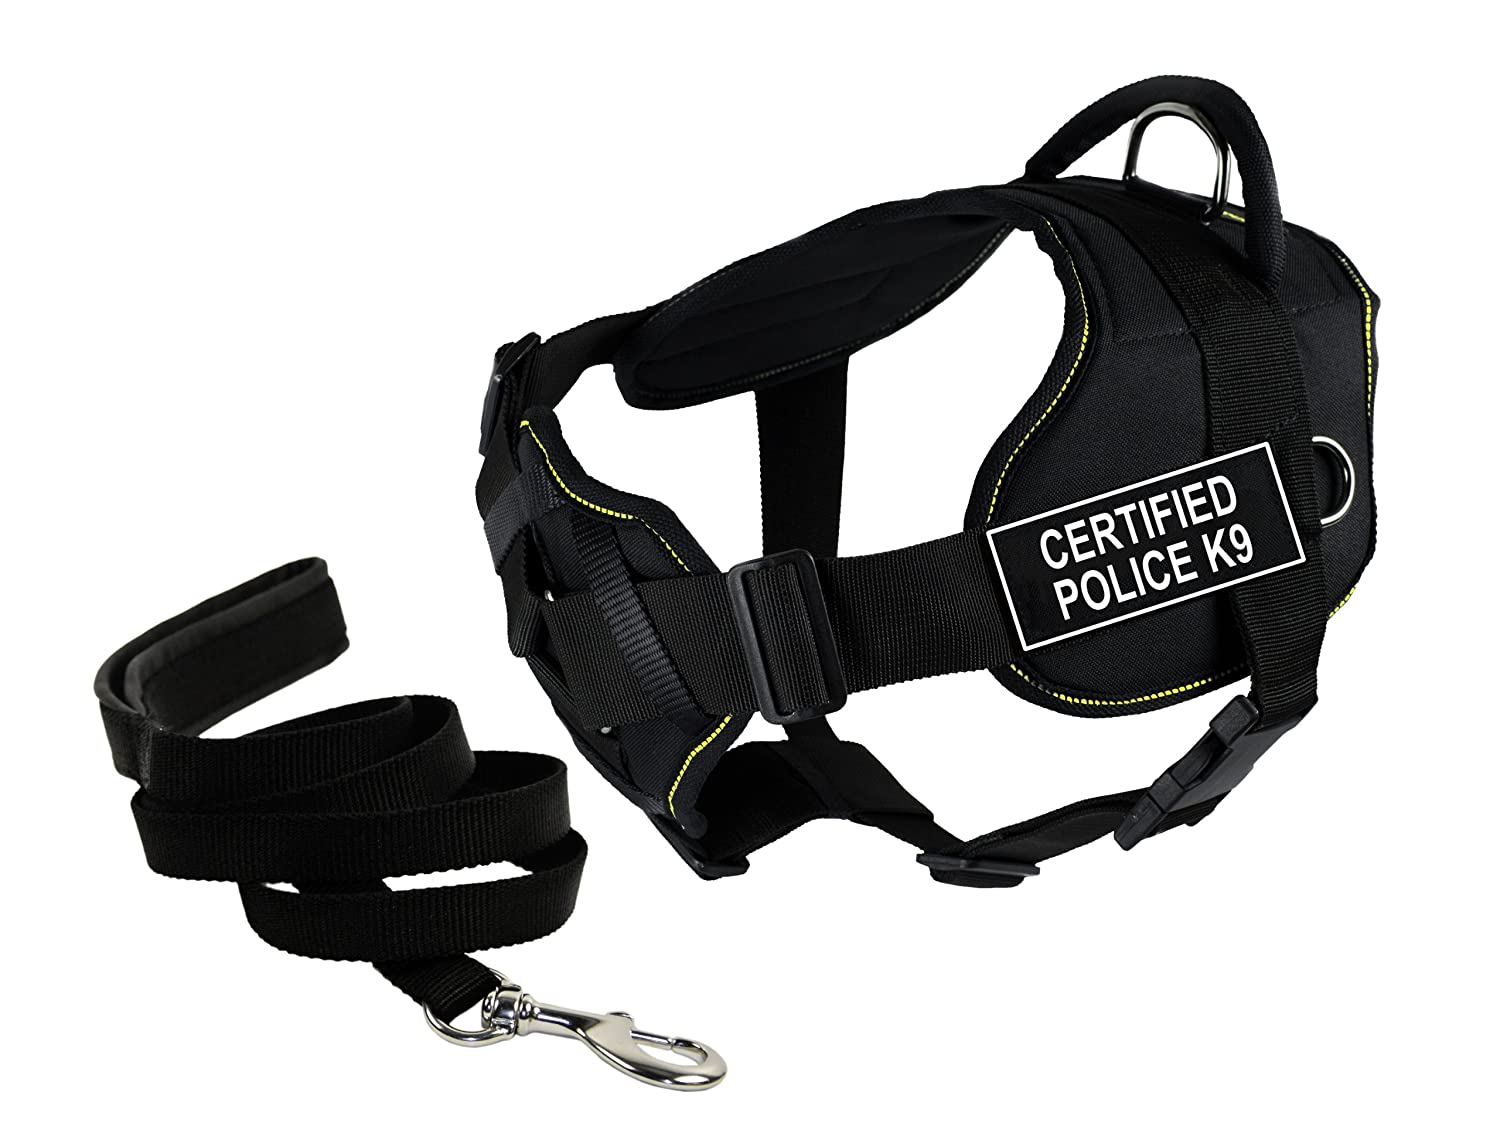 Dean & Tyler's DT Fun Chest Support CERTIFIED POLICE K9 Harness, Large, with 6 ft Padded Puppy Leash.